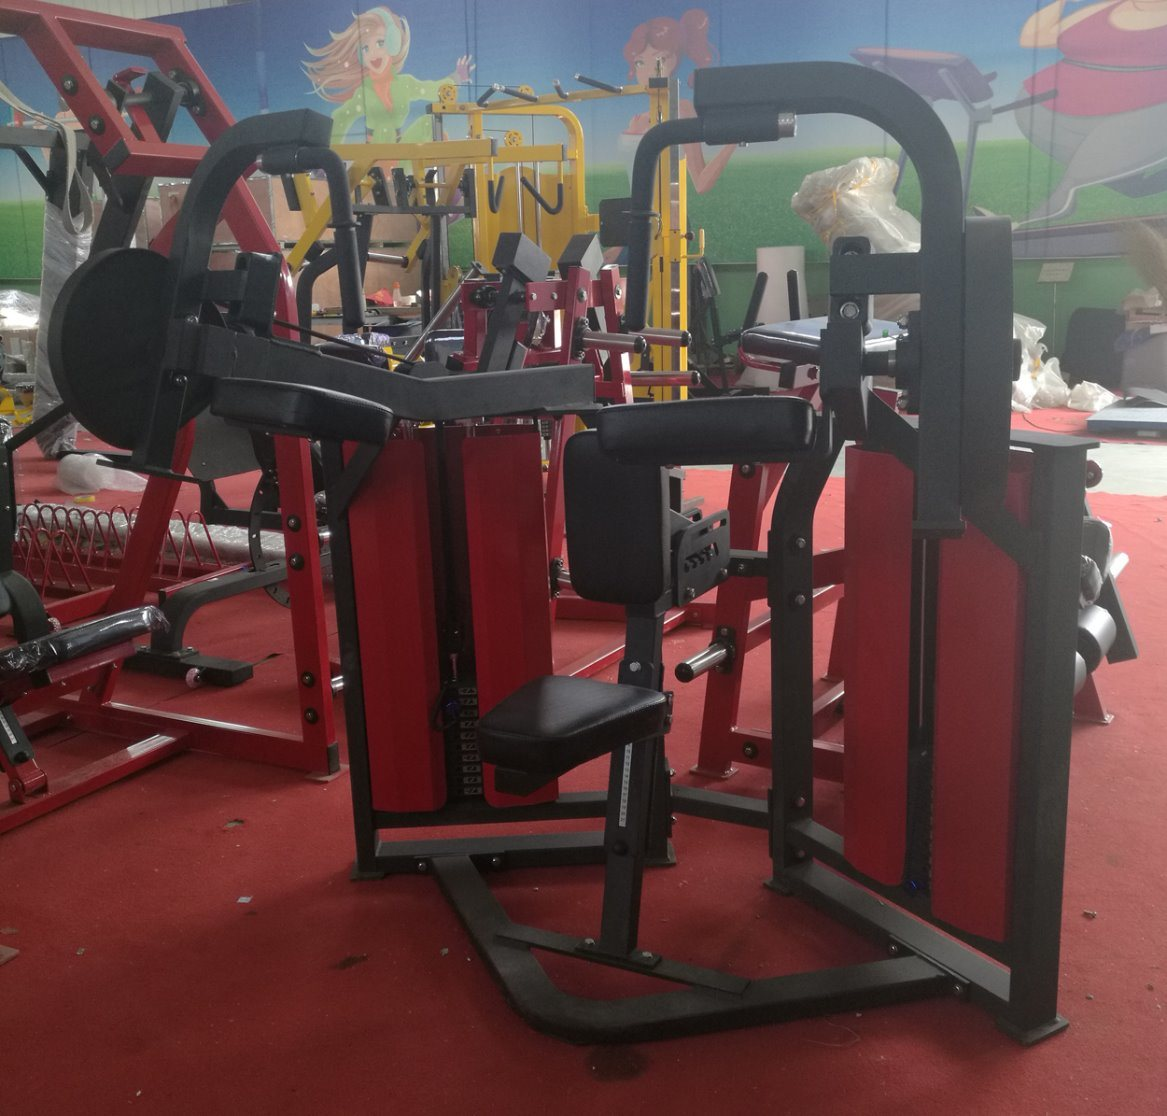 Excellent Hammer Strength Mts Fitness Equipment